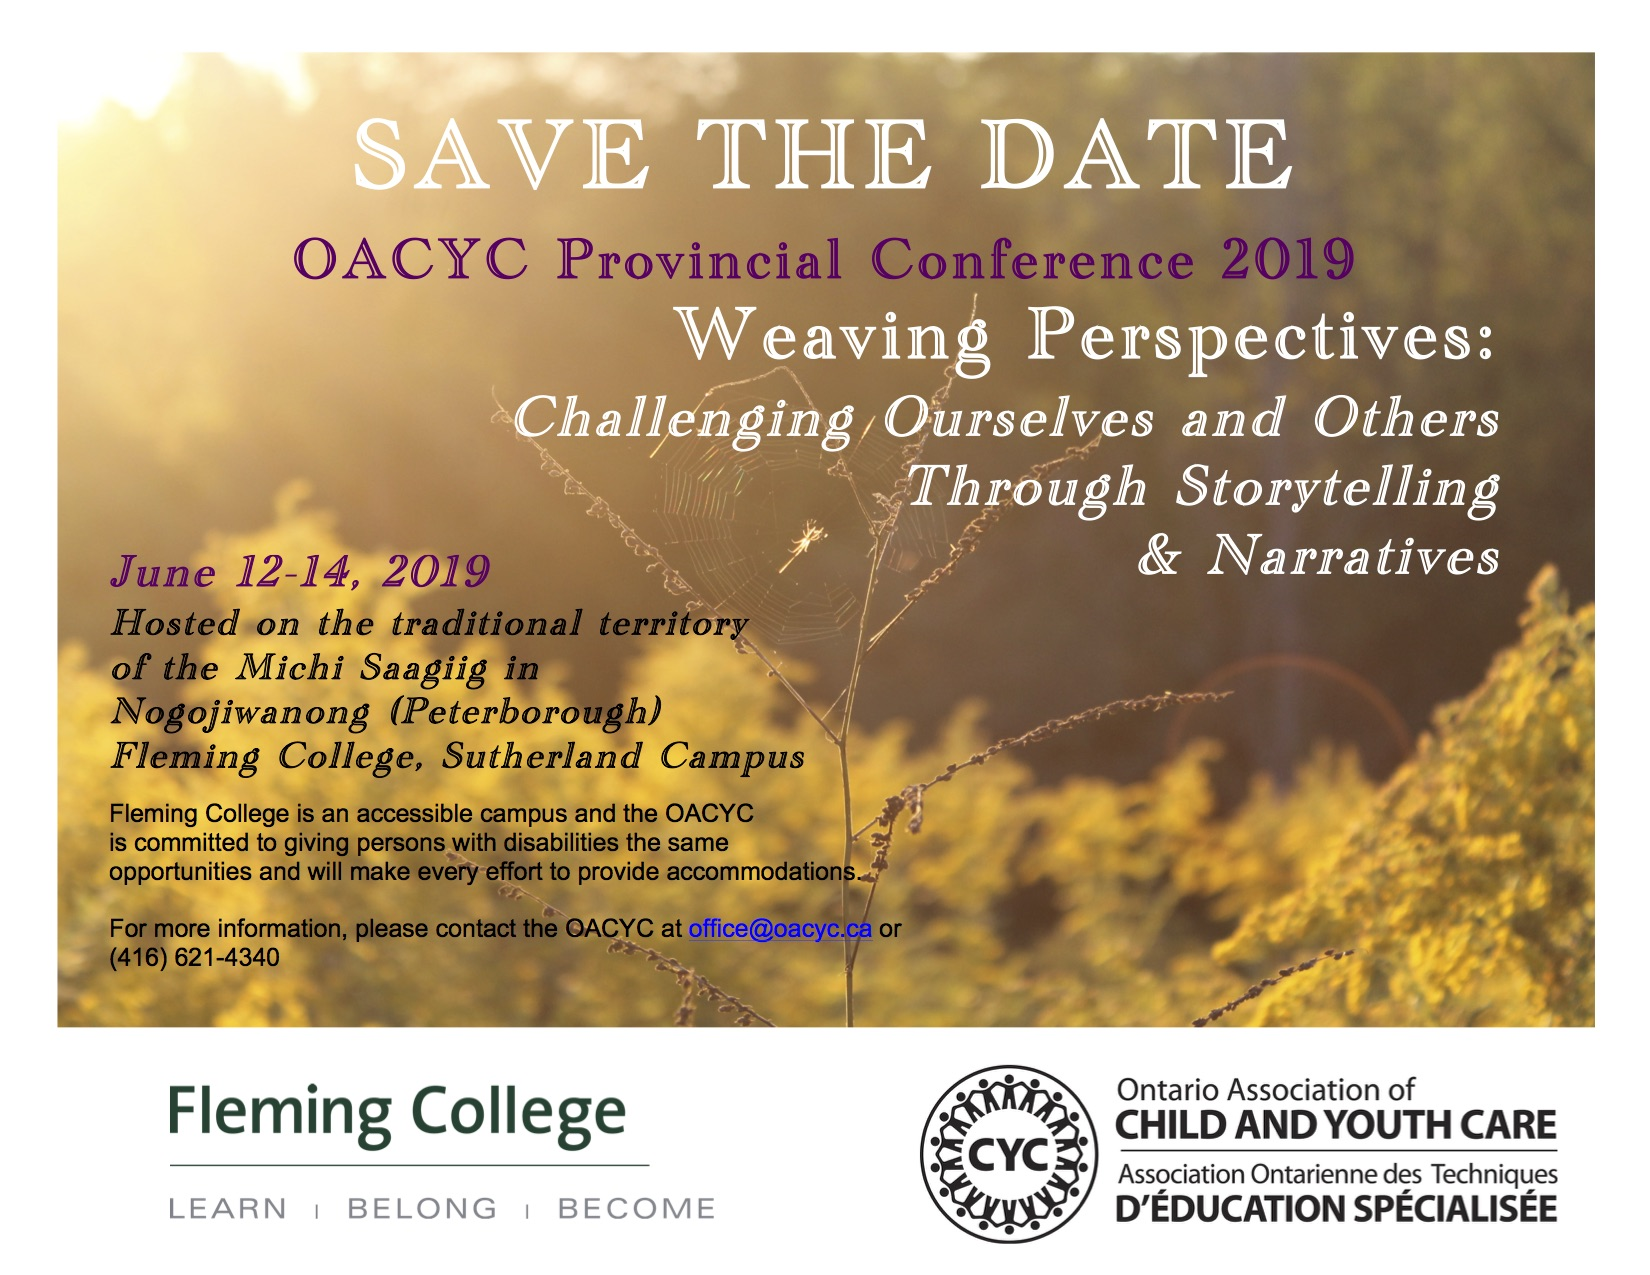 OACYC_Conference_2019_Poster_Oct_1_2018